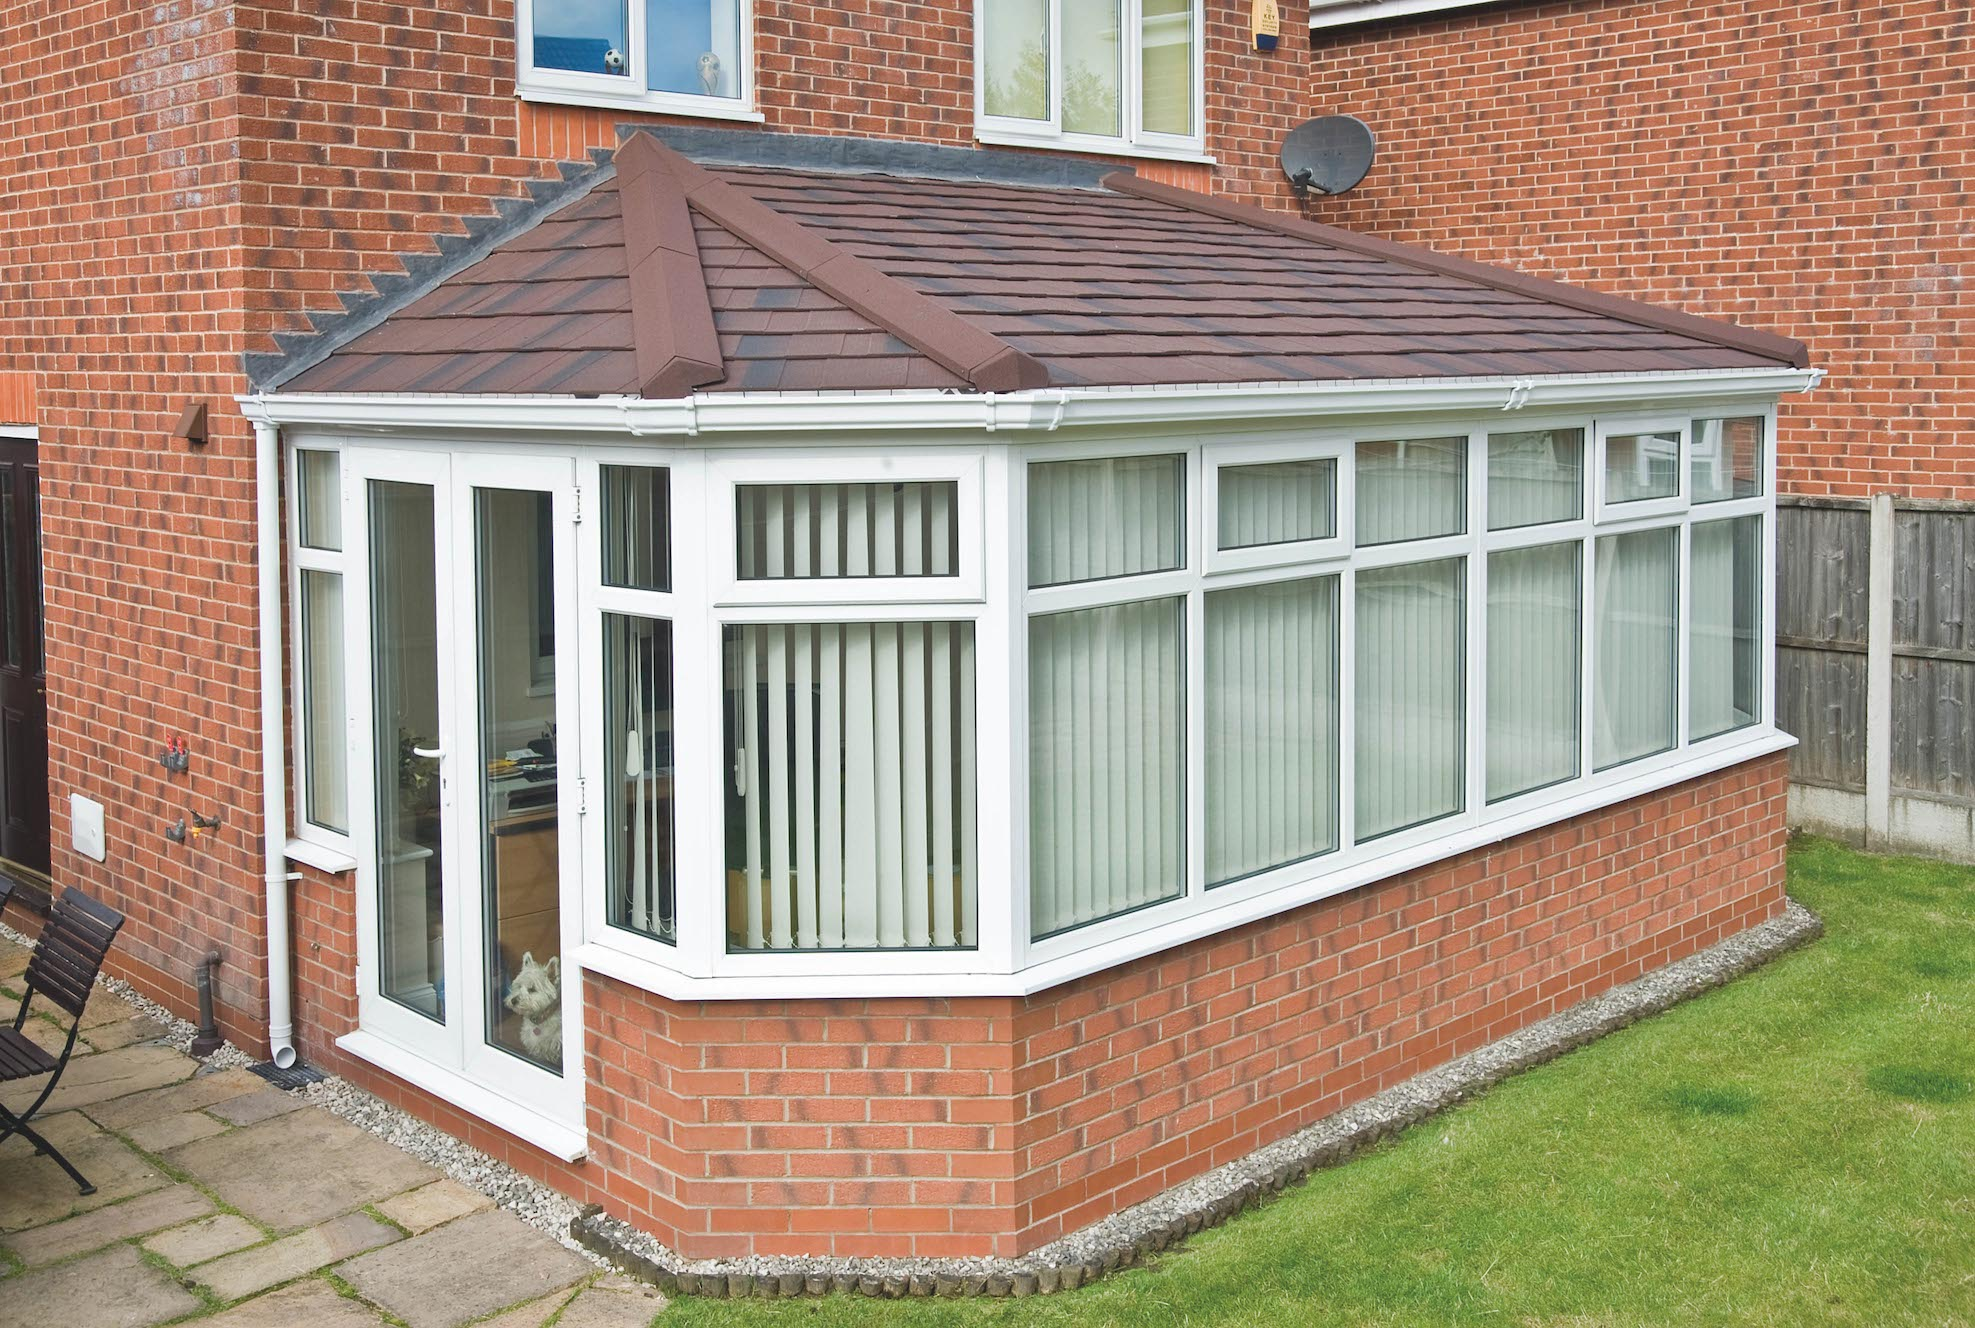 Conservatory refurbished with a Metrotile Lightweight Roof System Shingle Antique Red